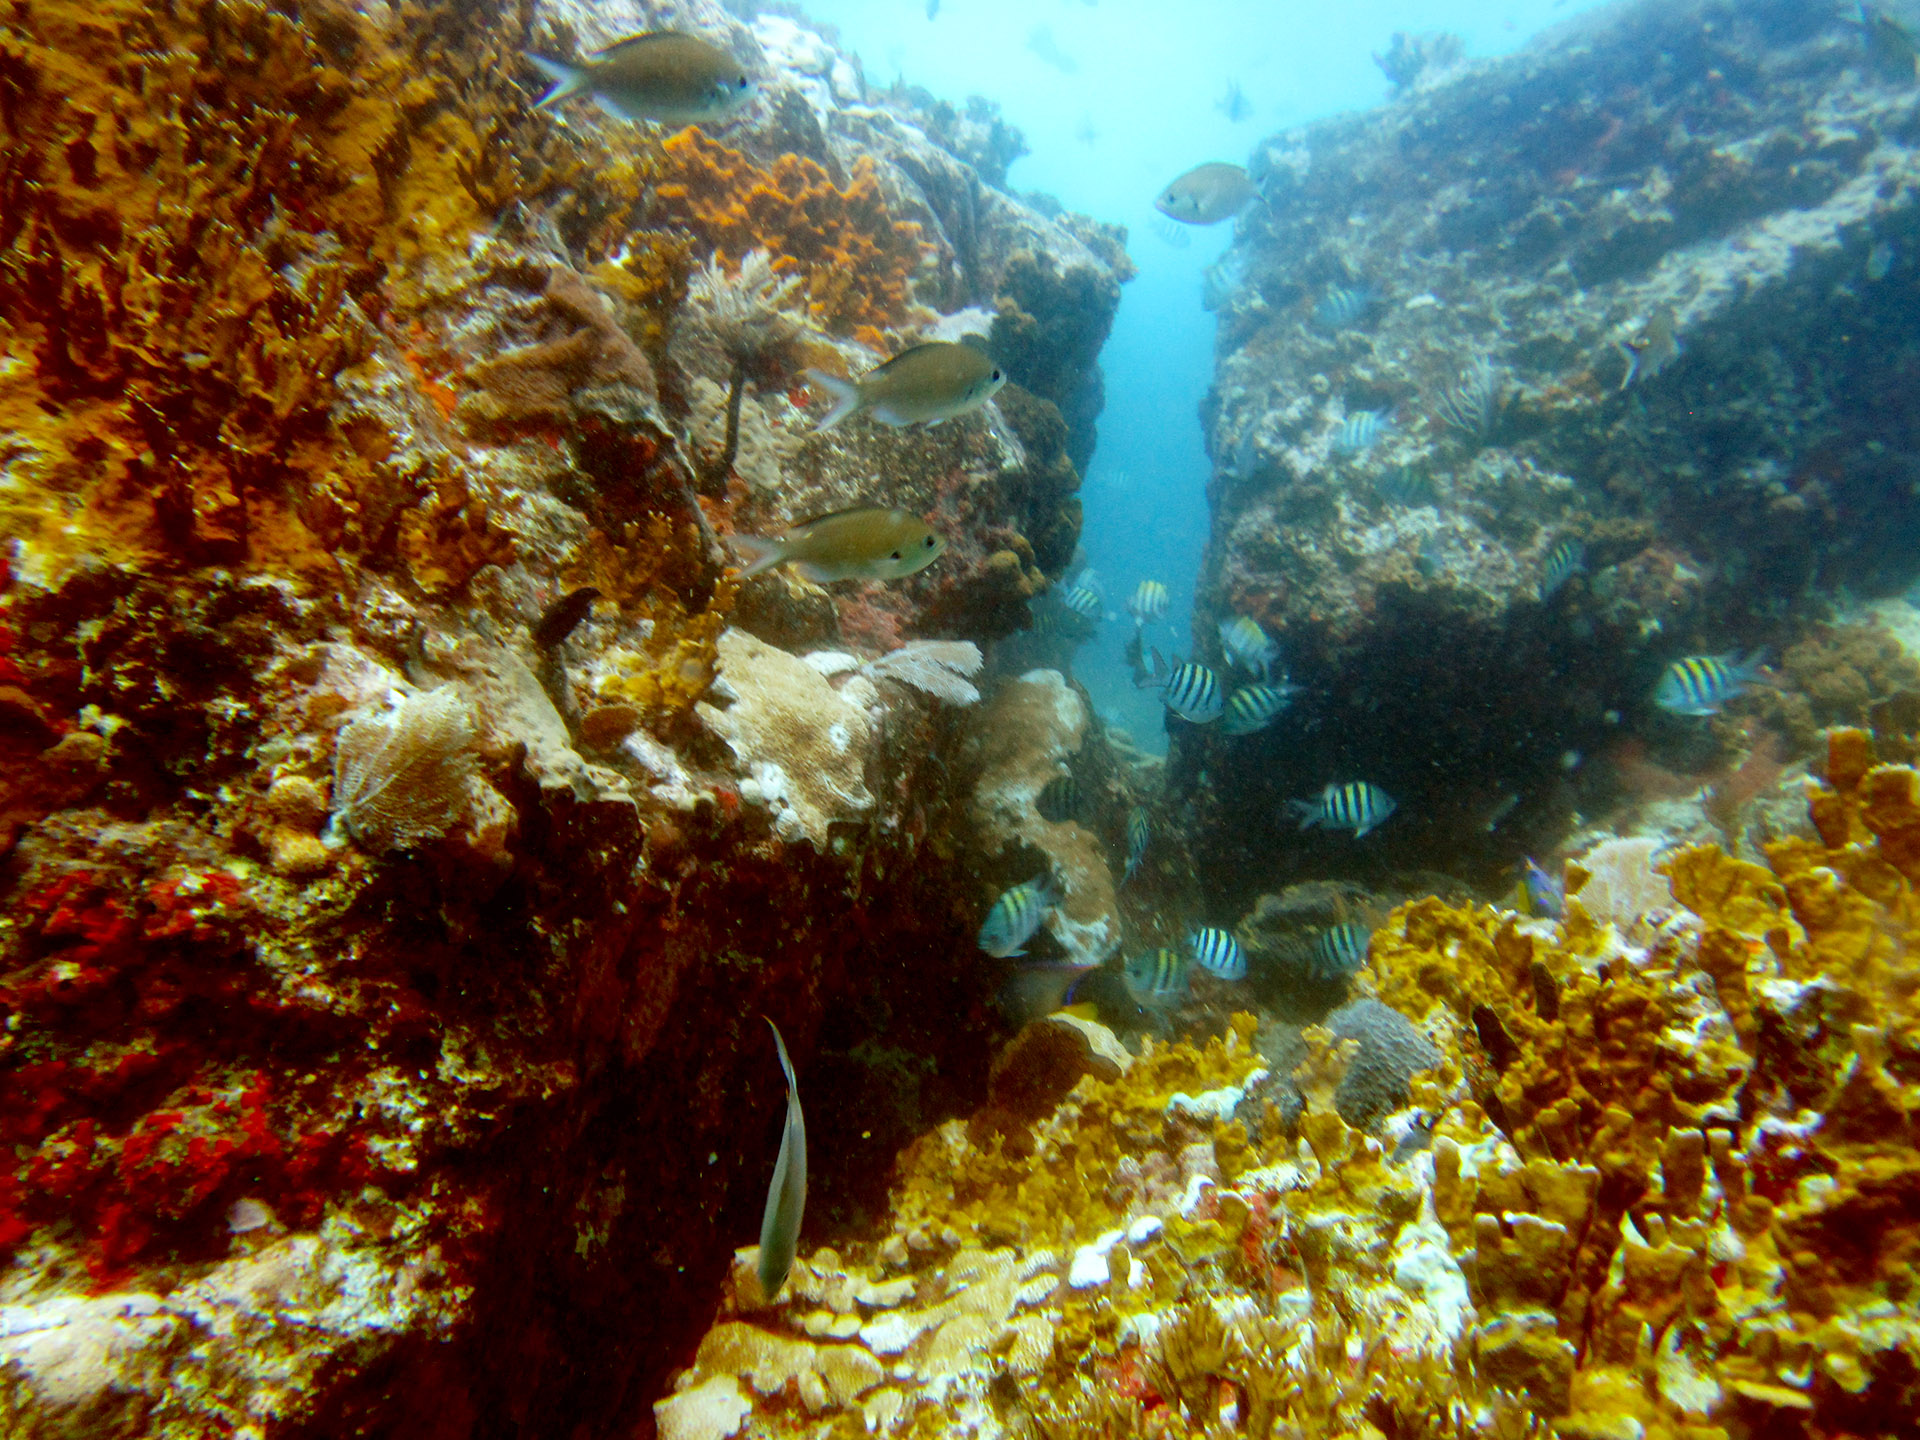 Diving at The Cow off St Thomas.